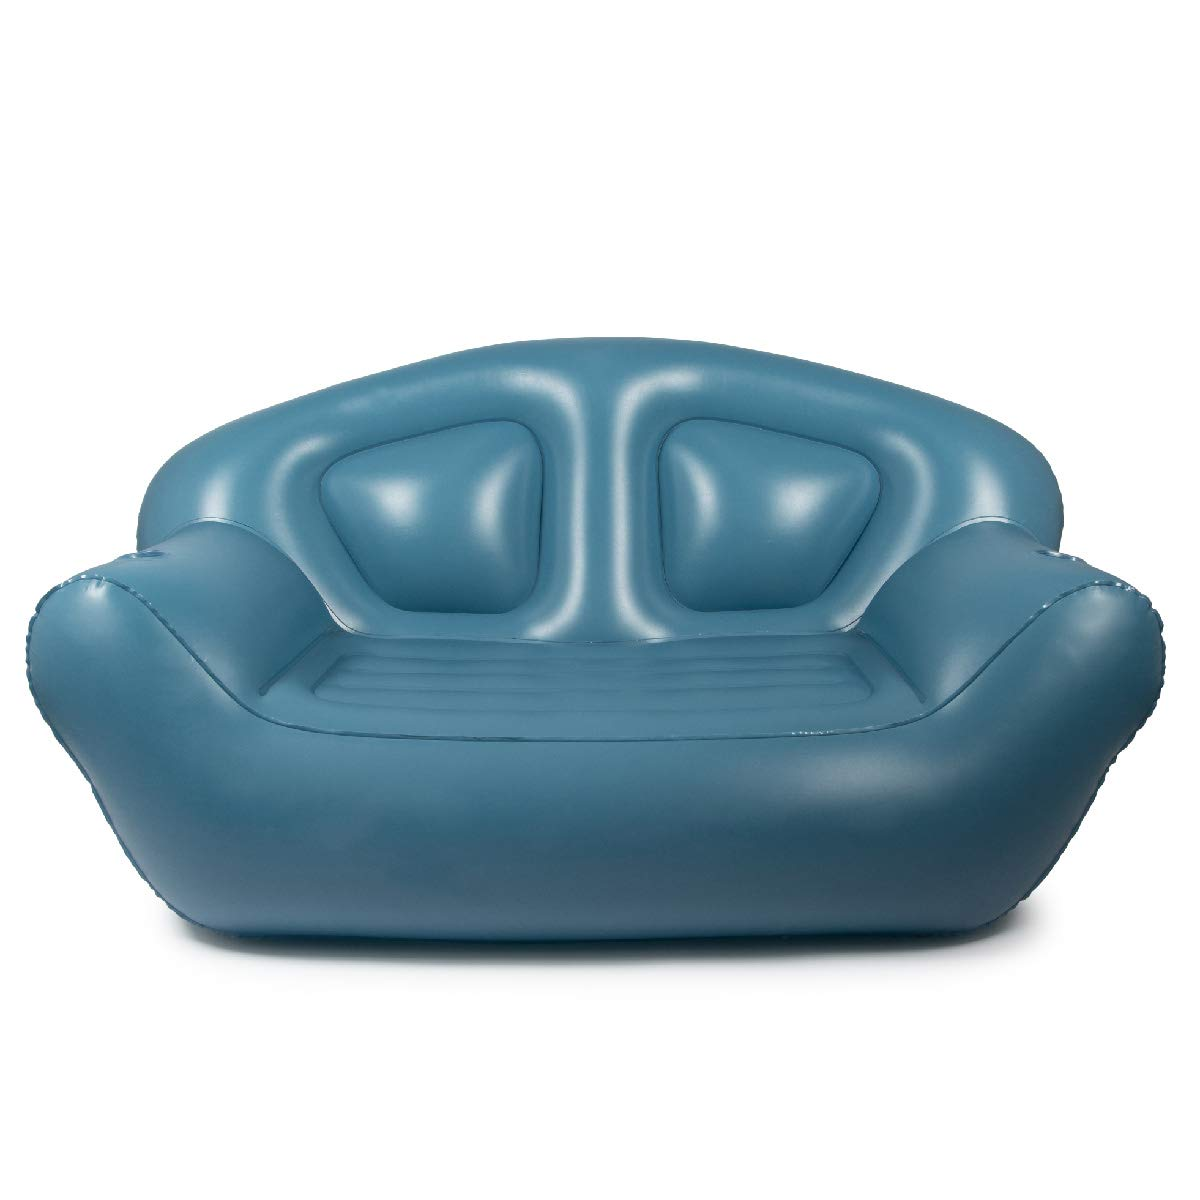 Milliard Inflatable Couch - Air Sofa – Perfect Lounger for Camping, Beach and Home (Blue)